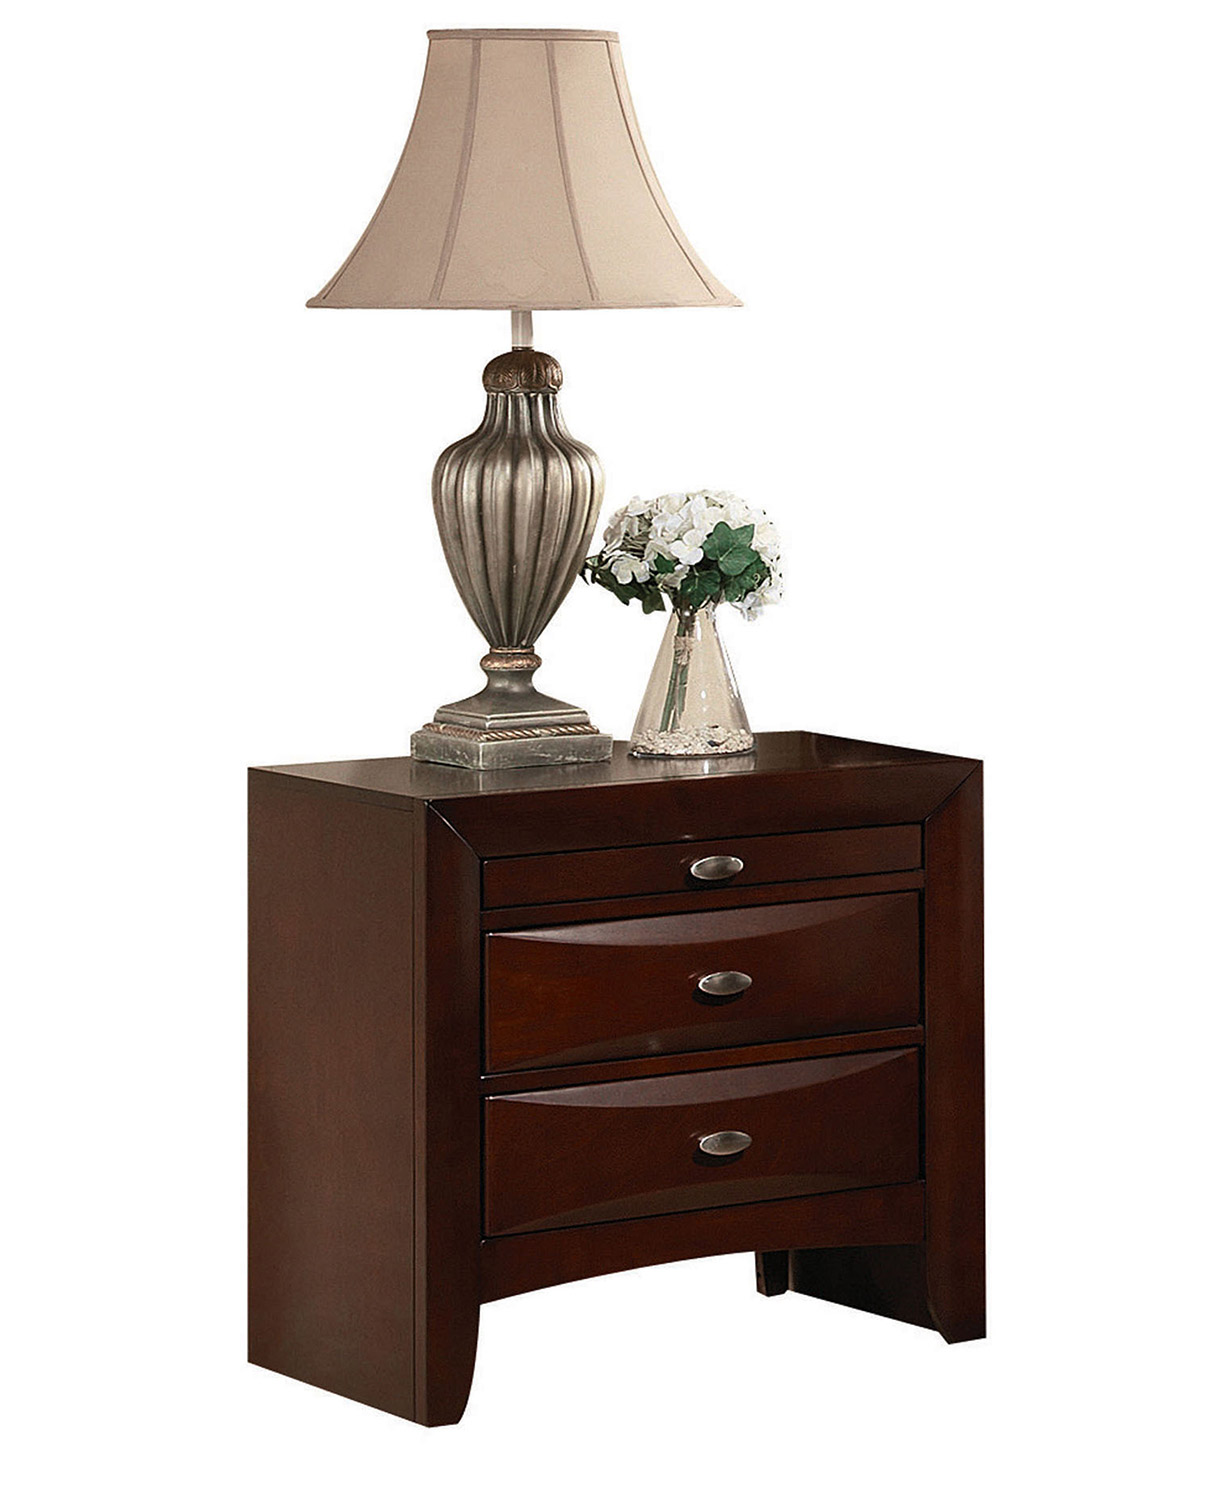 Acme Ireland Nightstand - Espresso